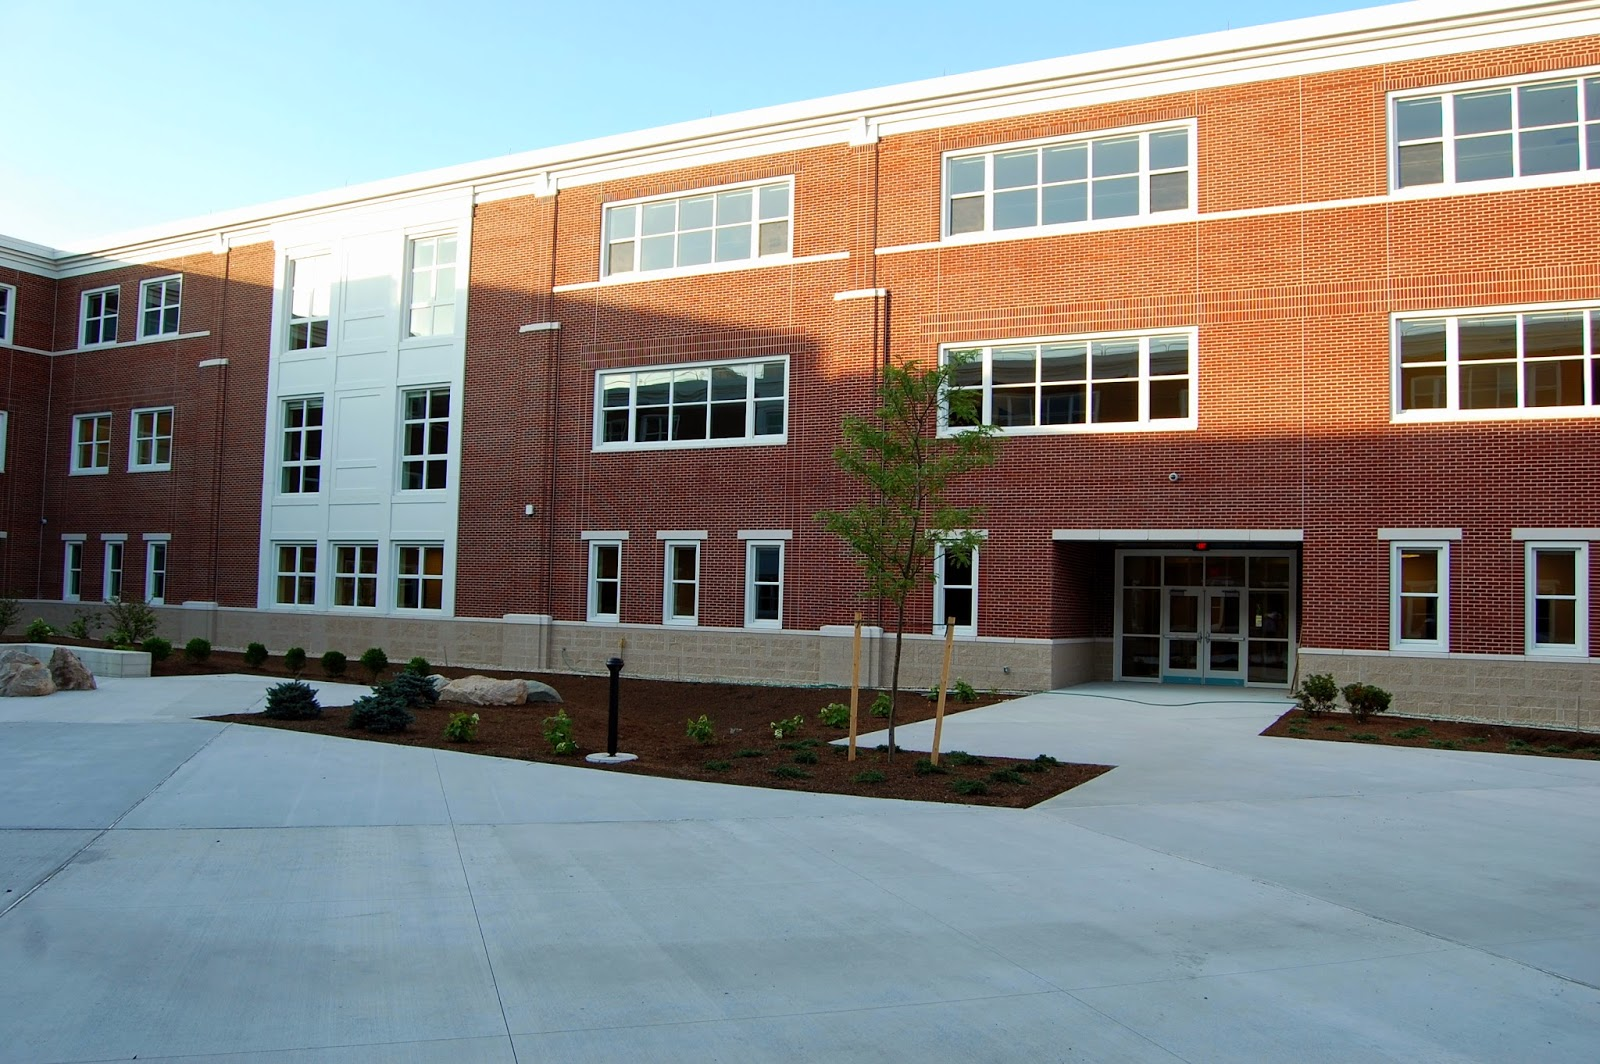 the interior courtyard of the new FHS